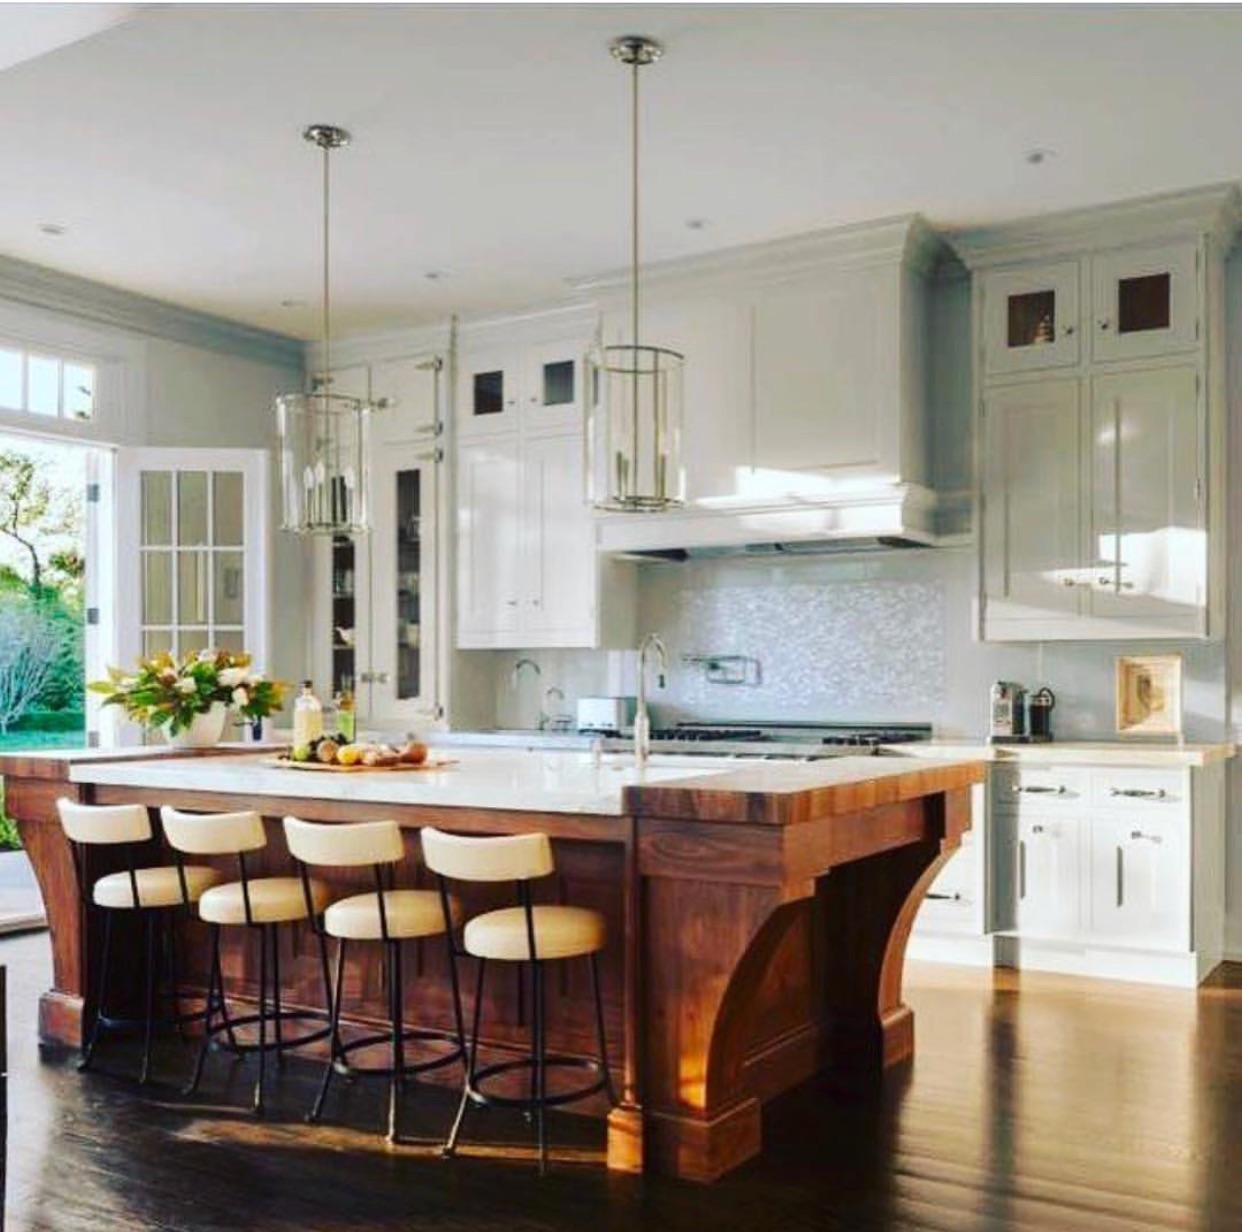 Hamptons Kitchens Kitchen In The Hamptons Designed By My Wife Kitchenporn